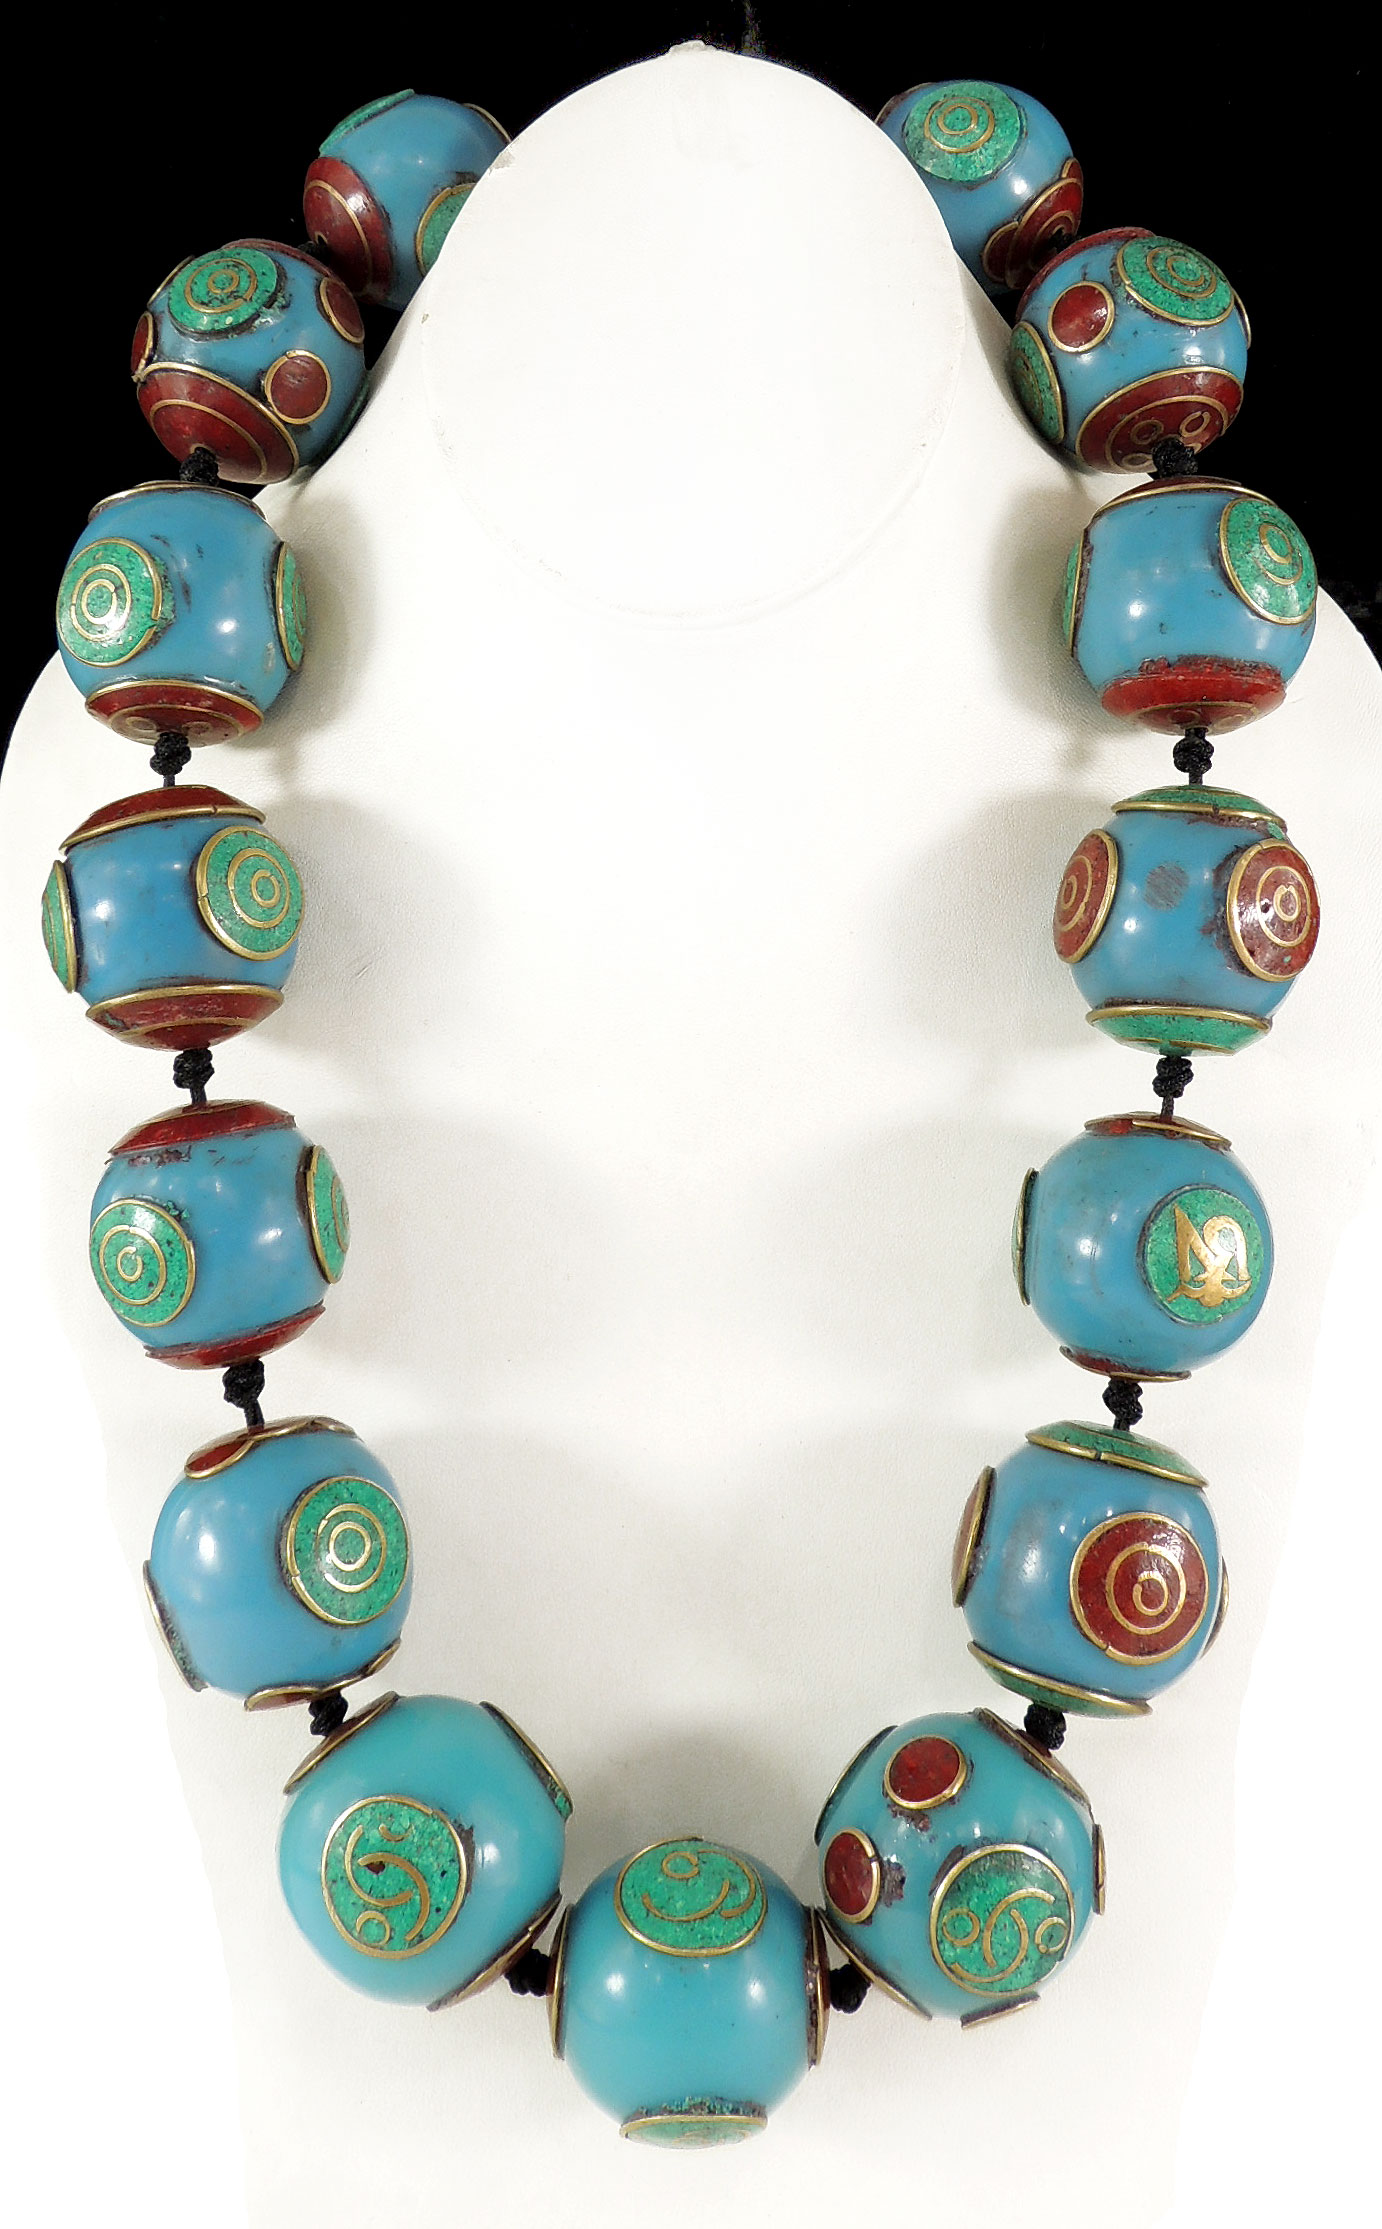 Tibetan Necklace Inlaid Turquoise Coral Amber Color Beads Huge by